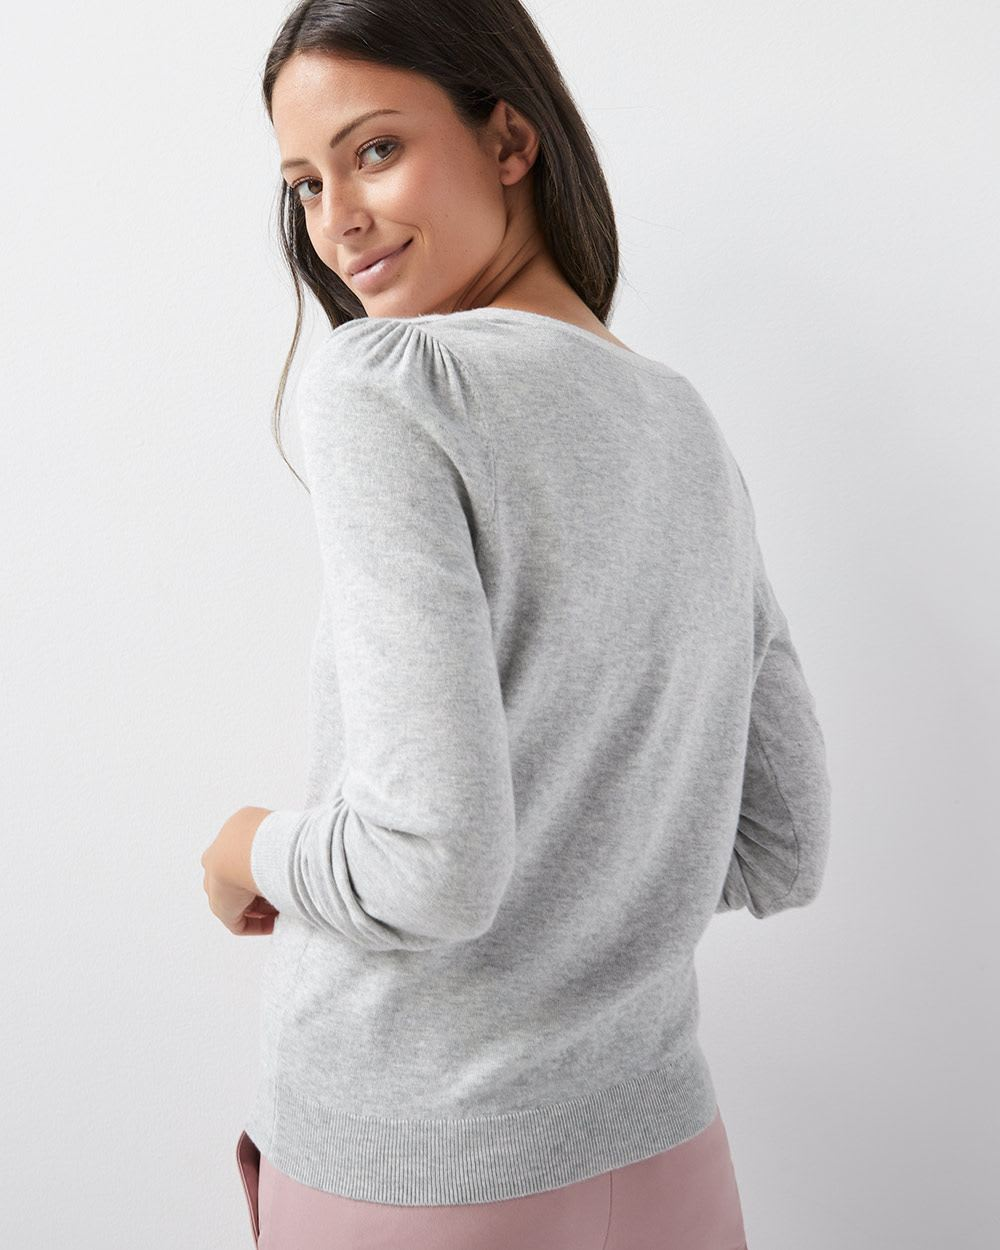 V-neck Cardigan with pockets